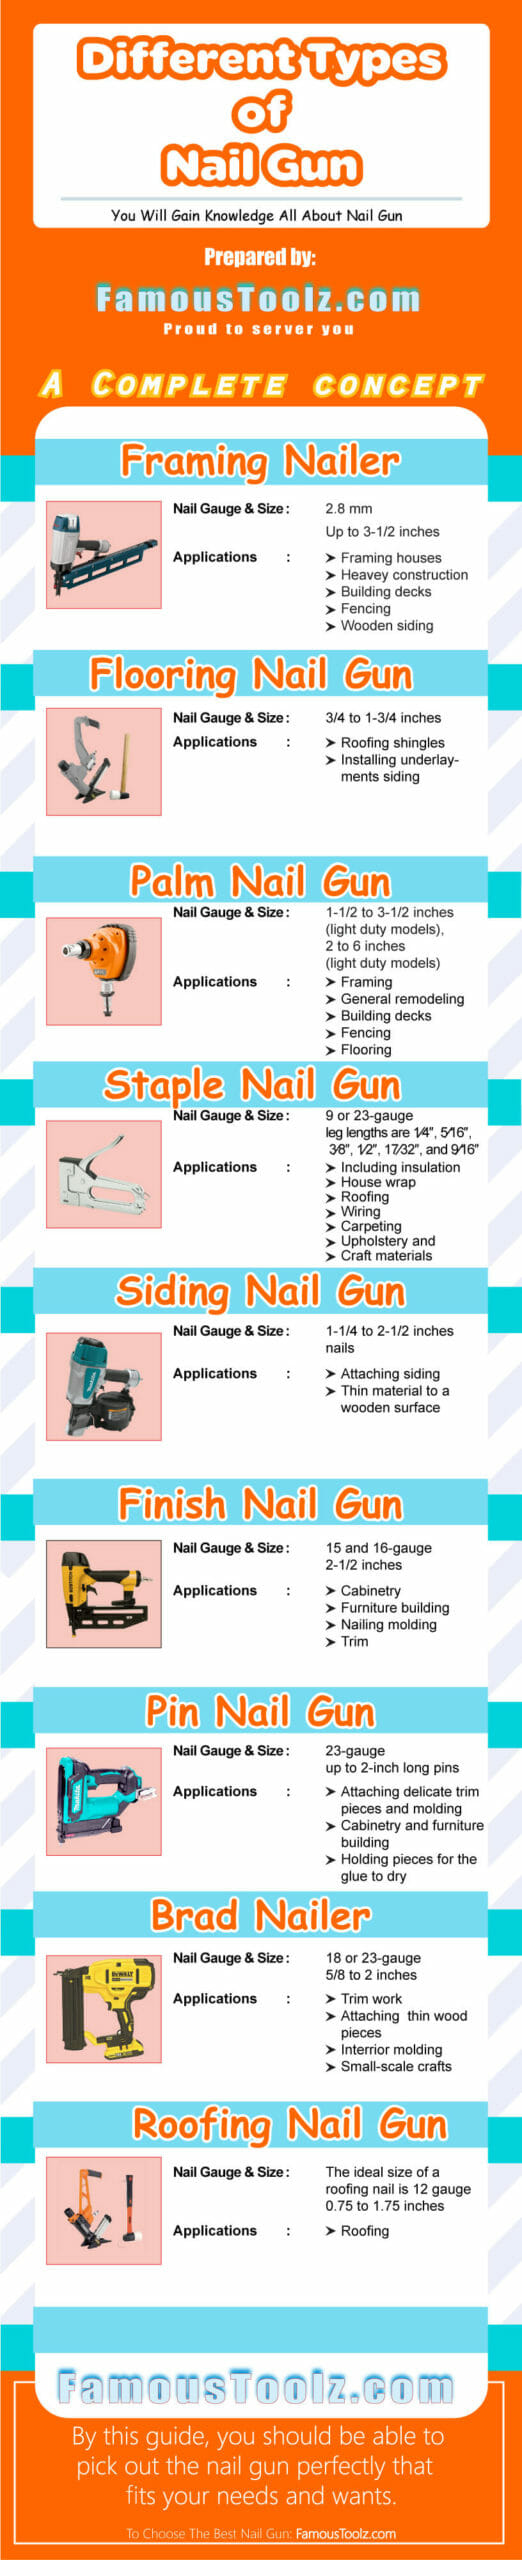 Infographic Different Types of Nail Guns